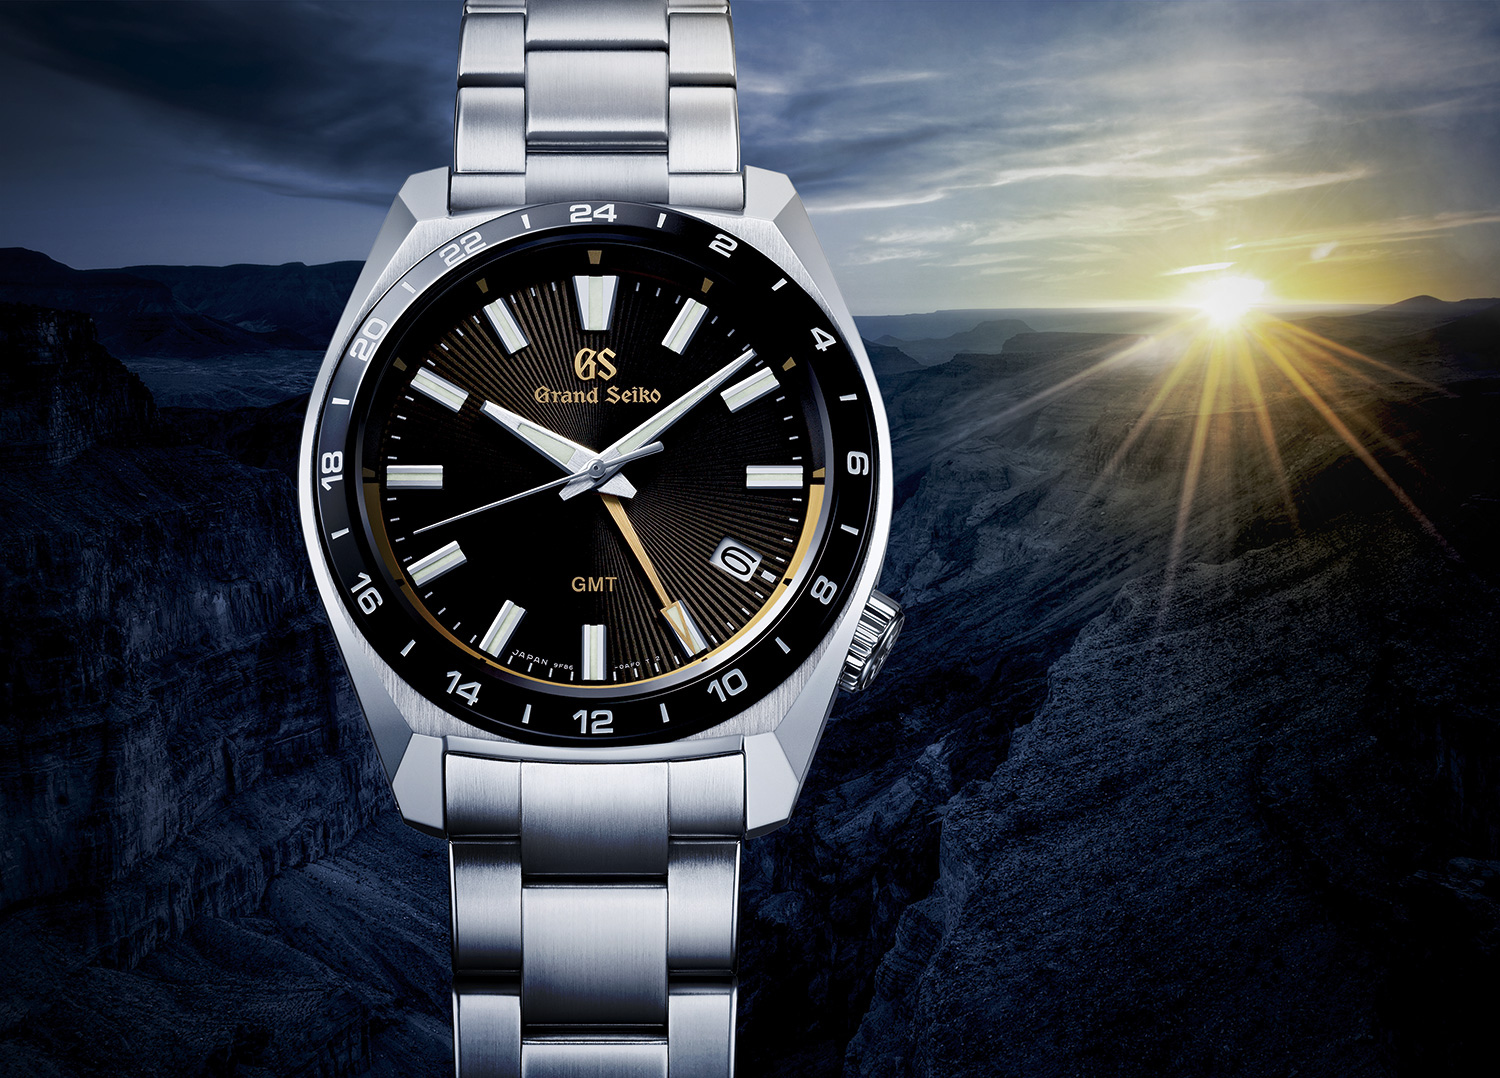 A Grand Seiko quartz GMT watch celebrates the 140th anniversary  of the company's foundation